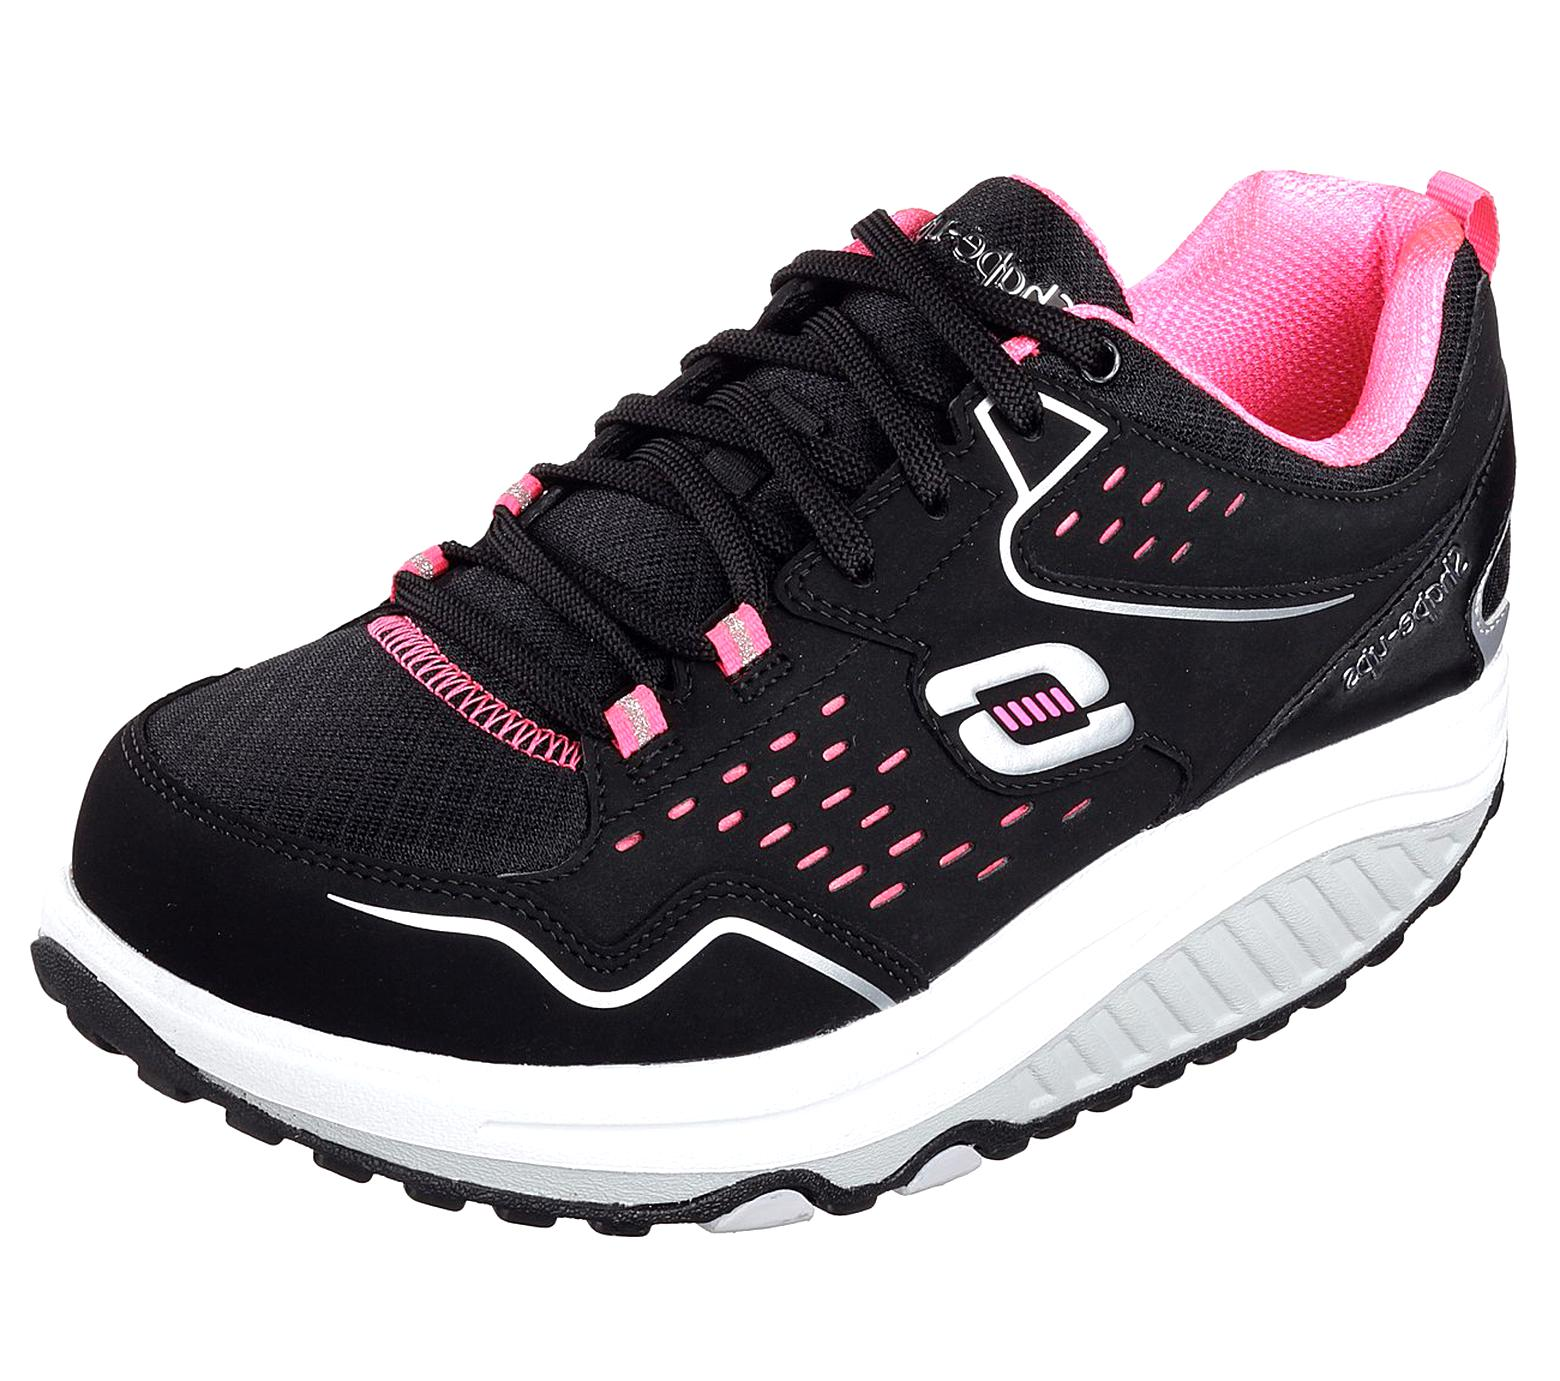 última colección gran ajuste moda más deseable Skechers Shape Ups Women for sale | Only 3 left at -75%